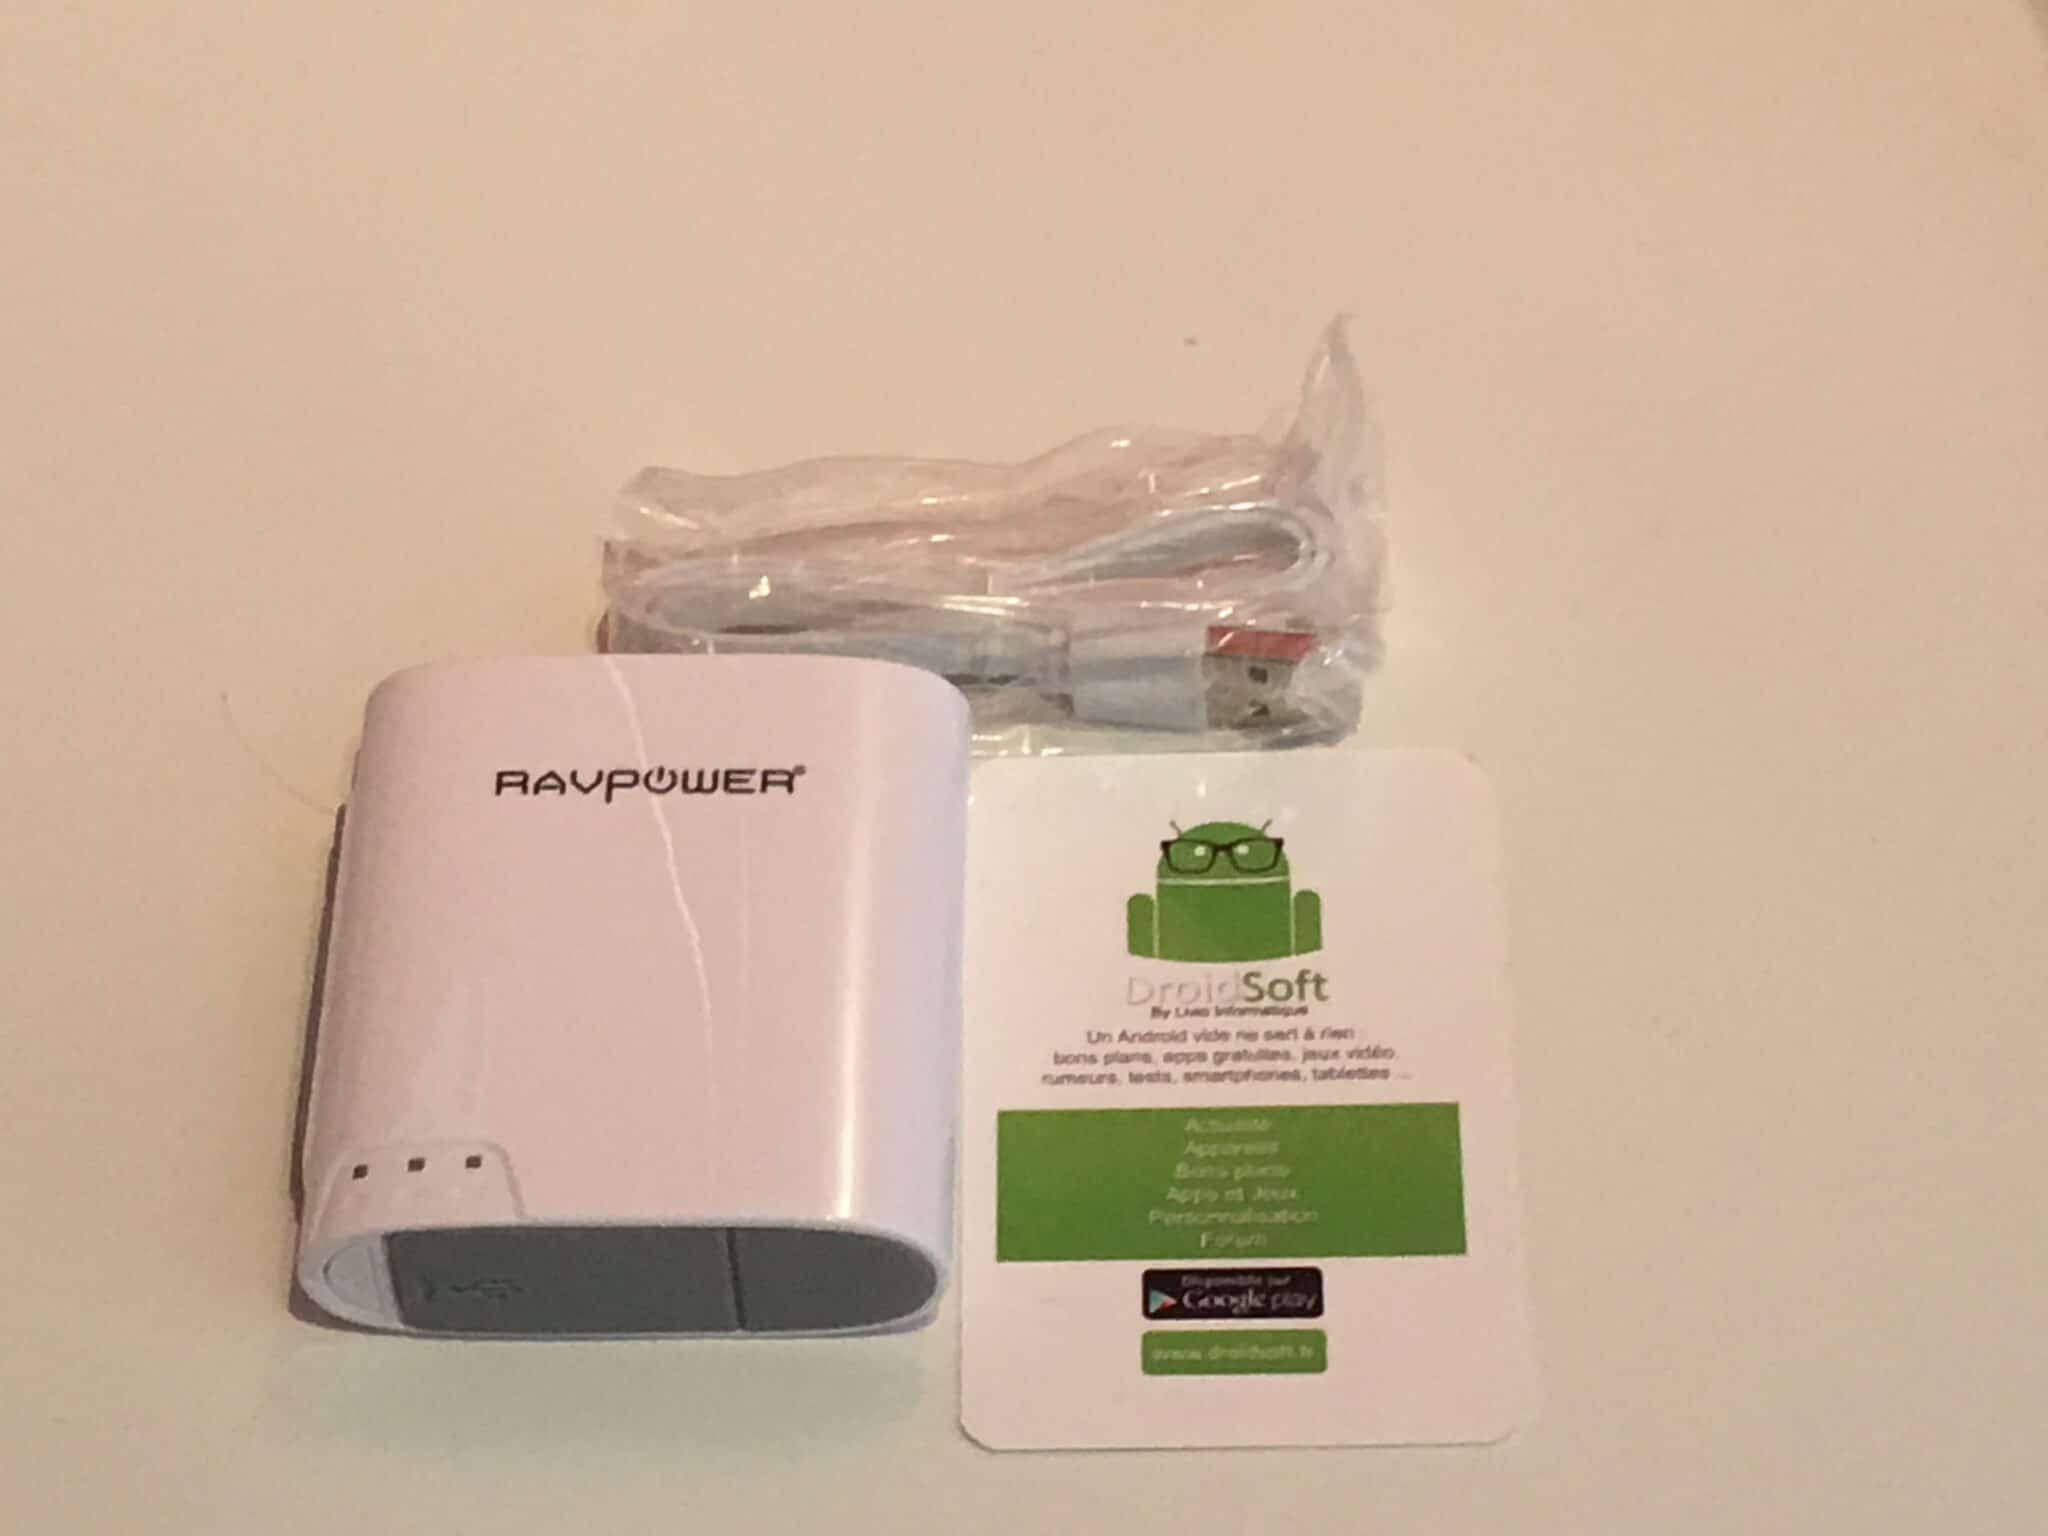 RAVPower à RP-WD02 6-en-1 FileHub  4